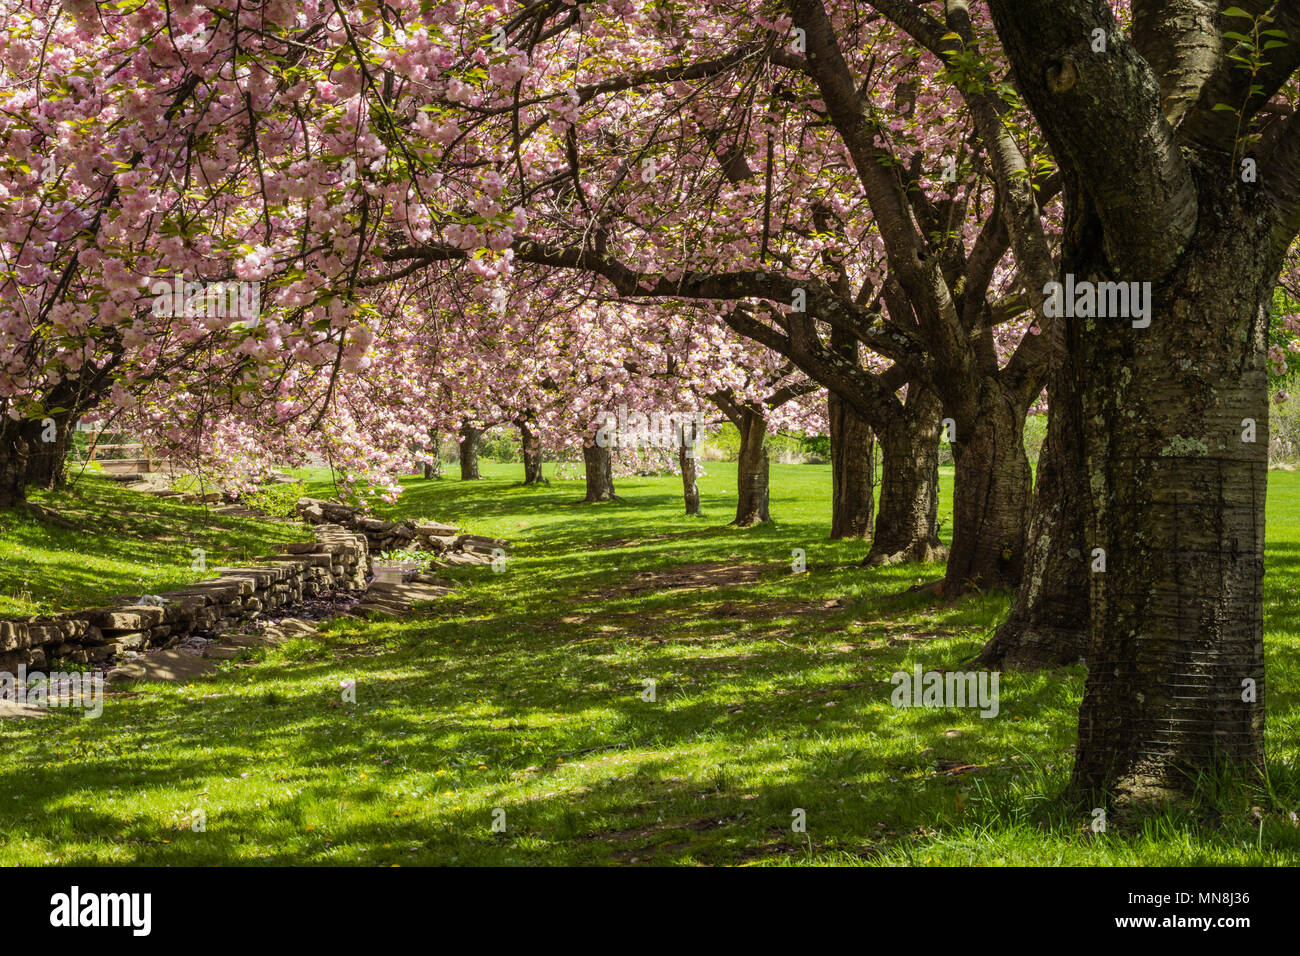 Pink cherry trees drape gracefully near a stone canal on a sunny spring day - Stock Image